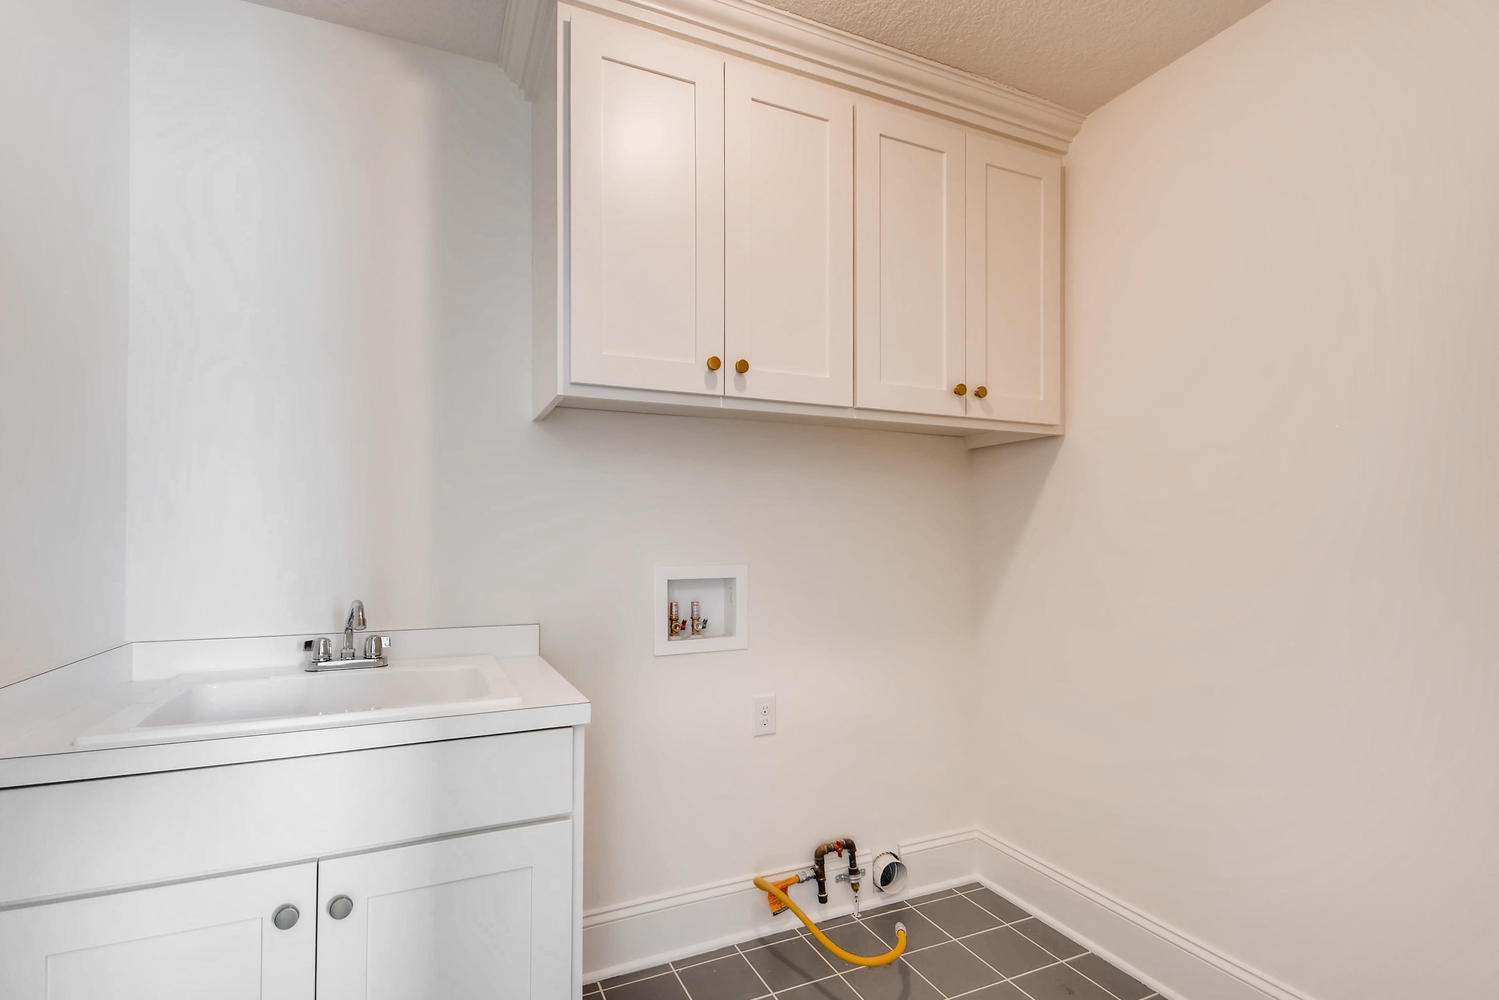 2949 Grand St NE Minneapolis-large-023-2-2nd Floor Laundry Room-1499x1000-72dpi.jpg